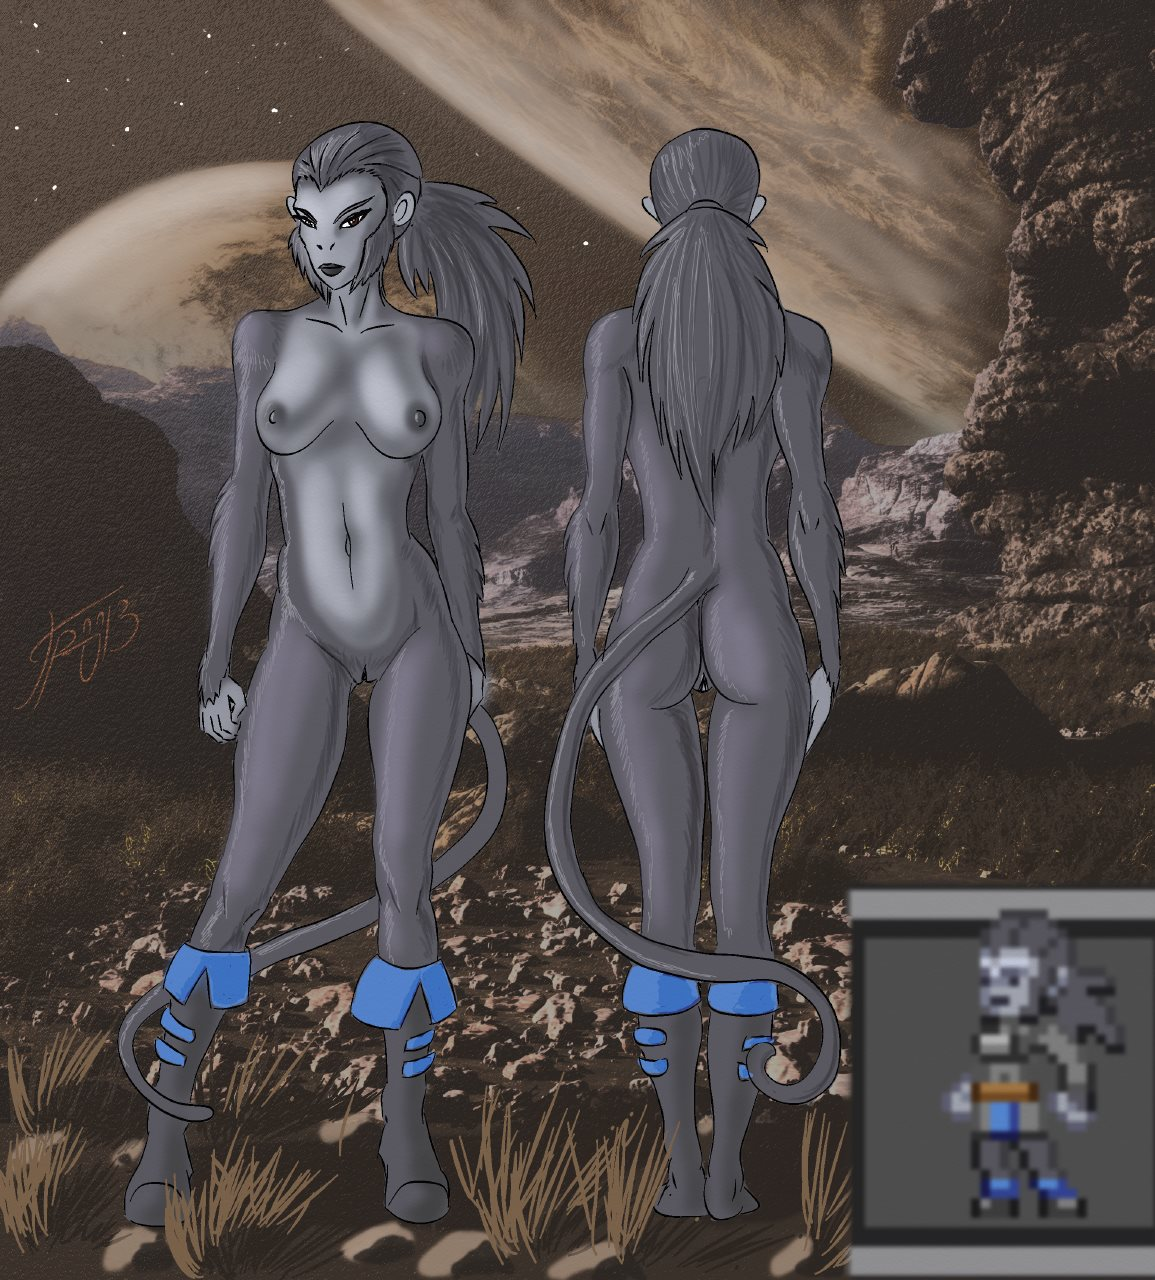 Alien Nude Girls rule 34 - alien anthro apex breasts female grey skin grriva